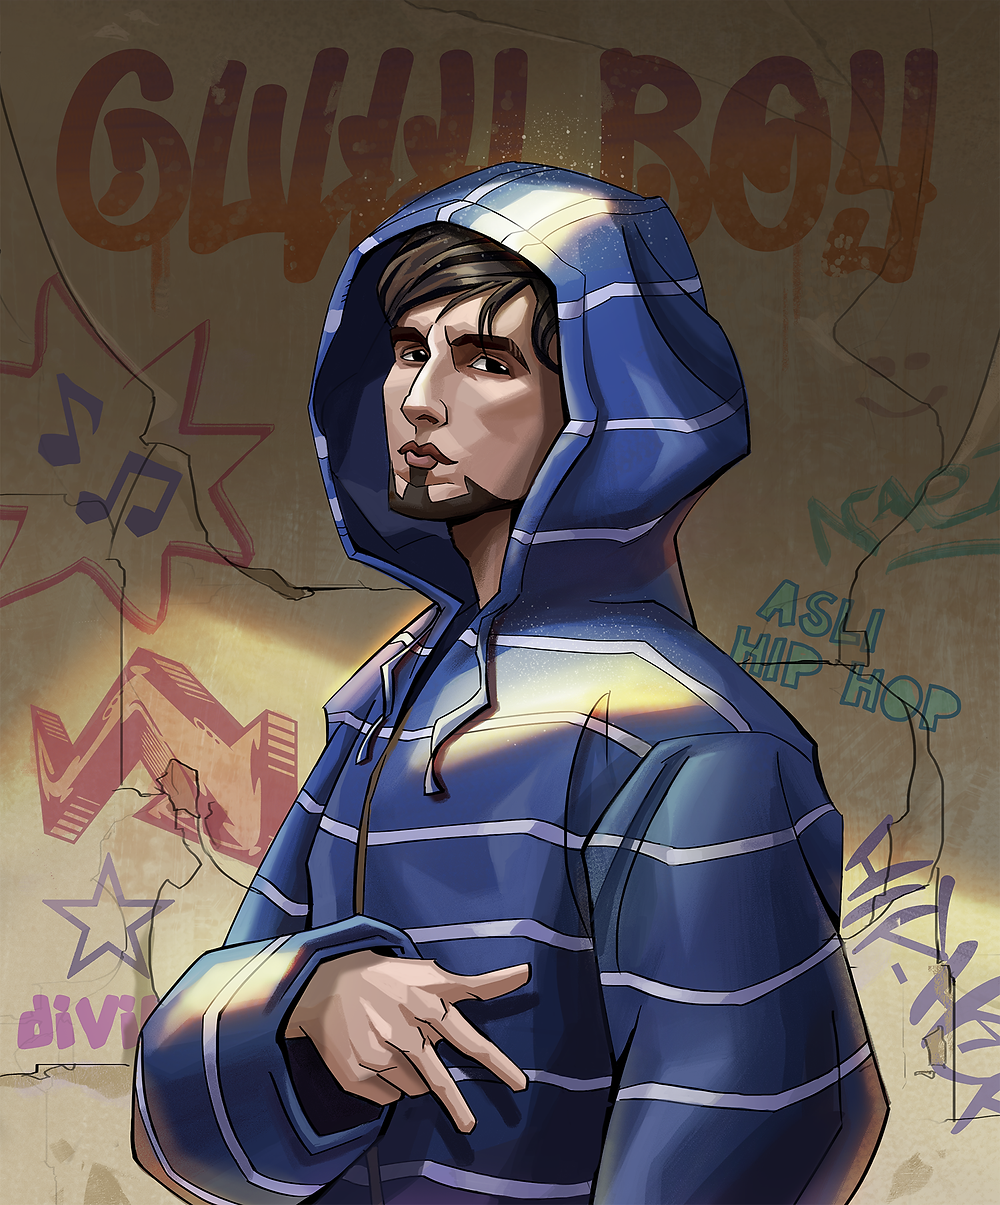 A fanart of Ranveer Singh from Gully Boy by Shehzad Kapadia